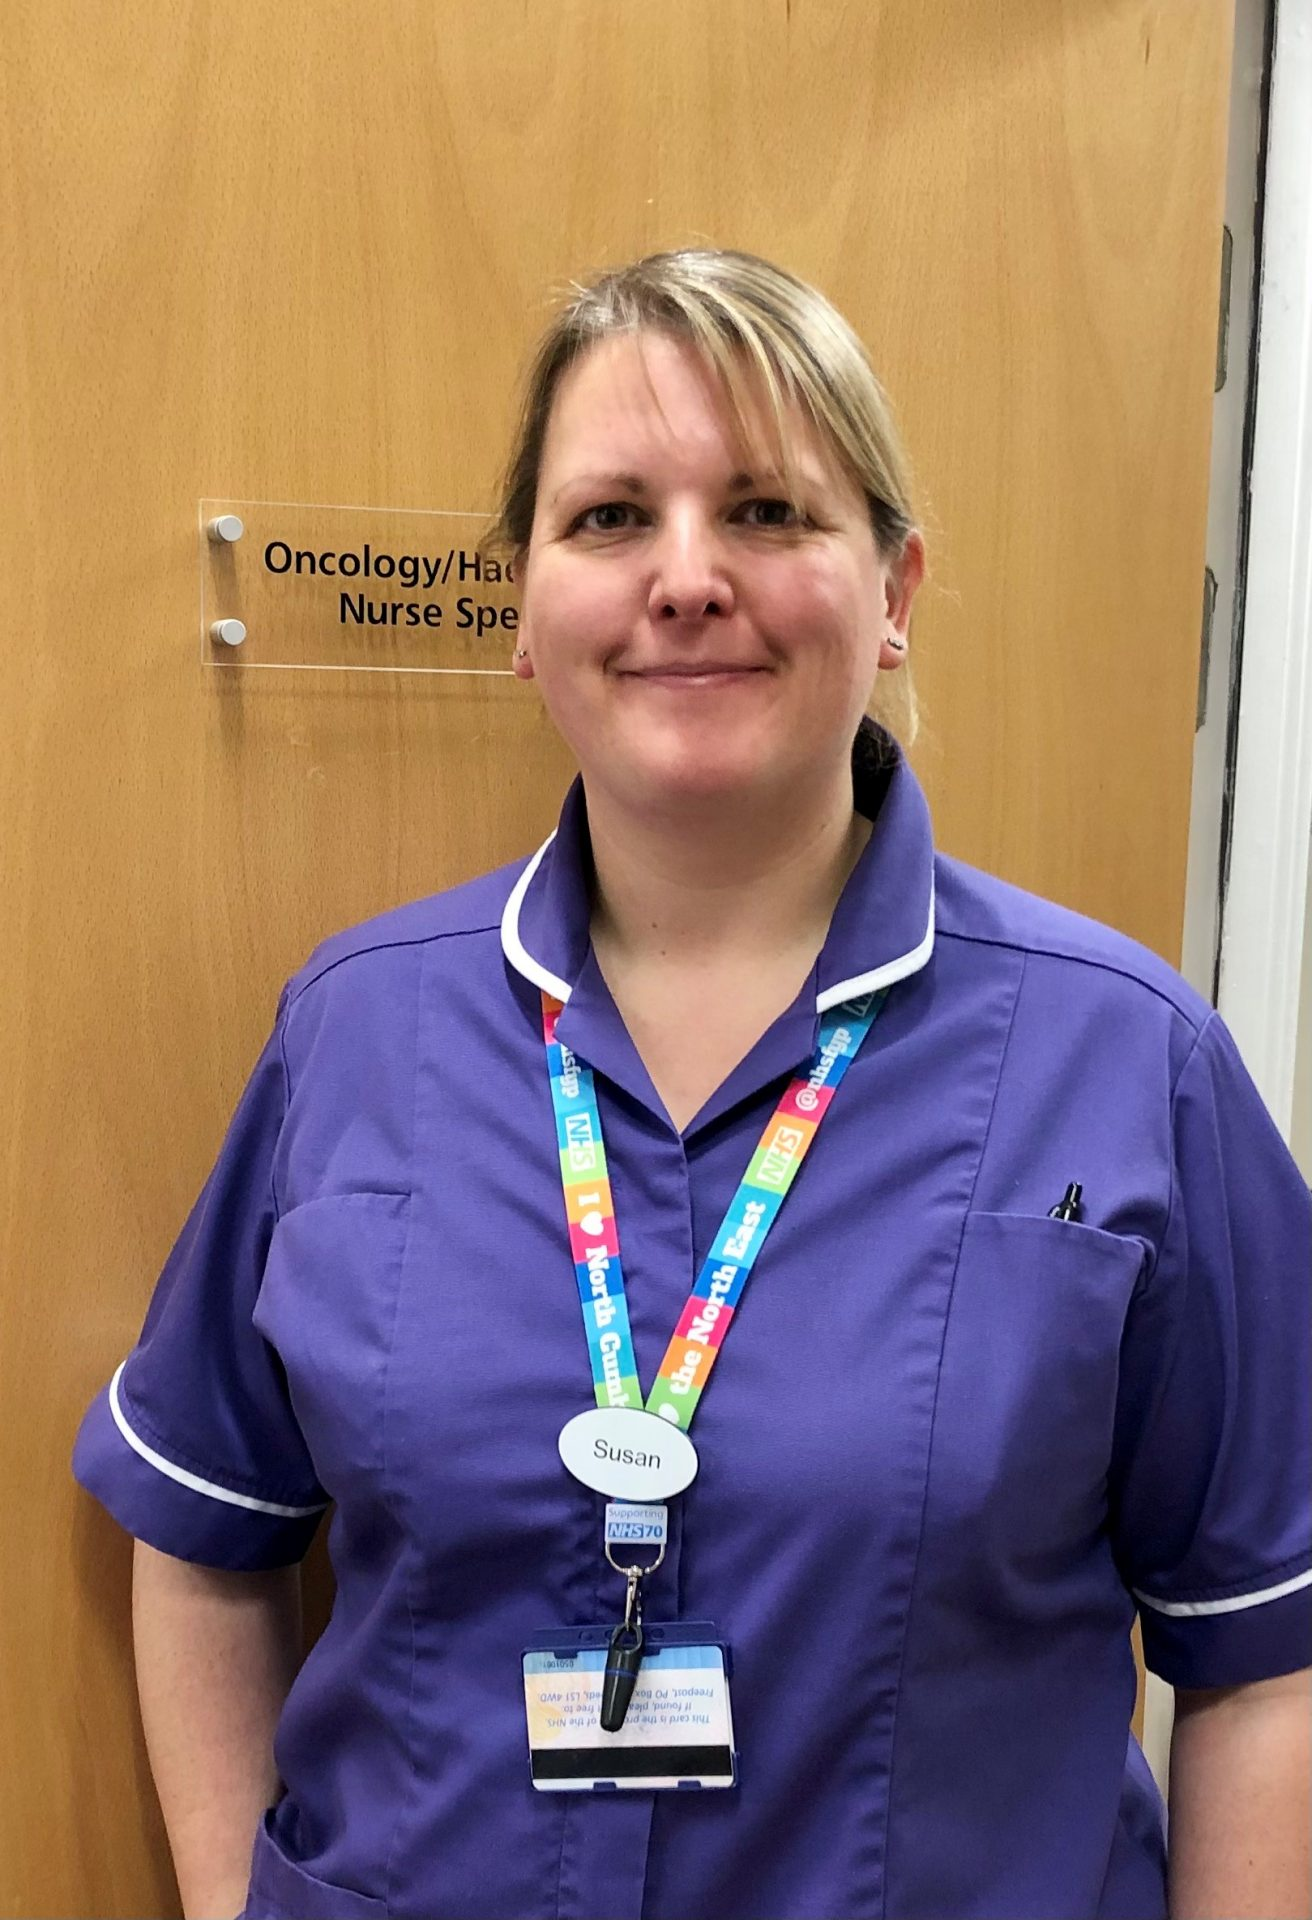 Susan Paskar's work as a nurse has taken her around the globe, but in our latest blog she explains how she's now starting a new role as a Advanced Clinical Practitioner.